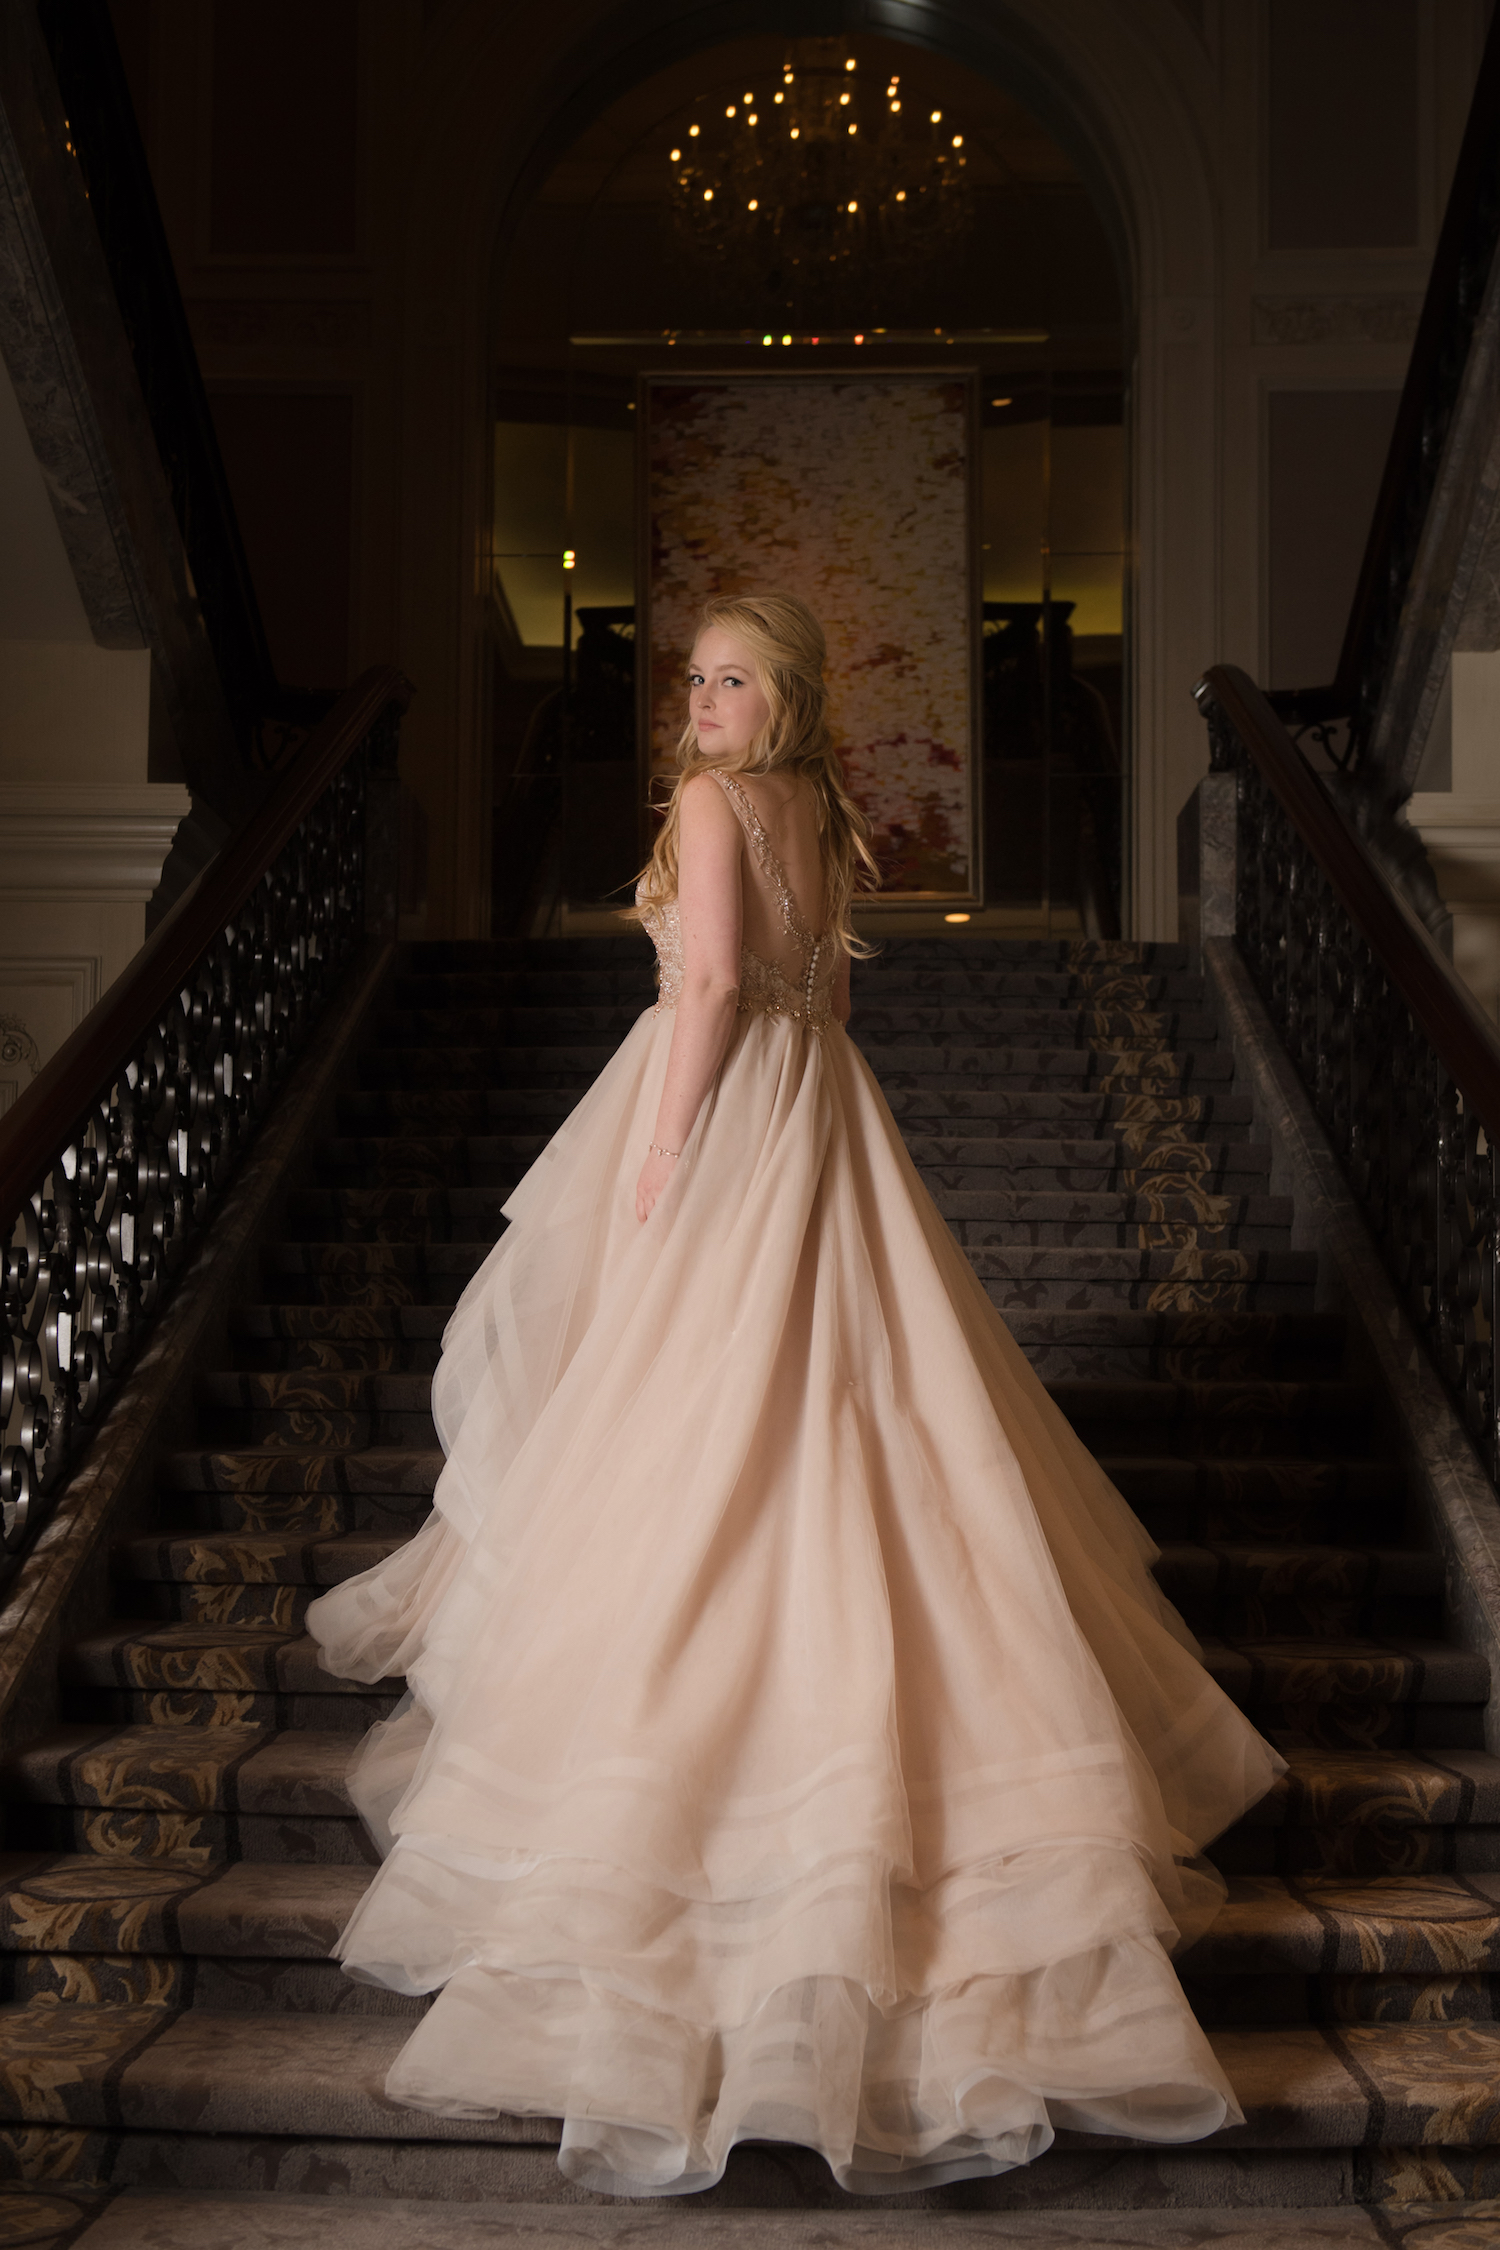 The staircase at the Four Seasons inspires us for these editorial style portraits.